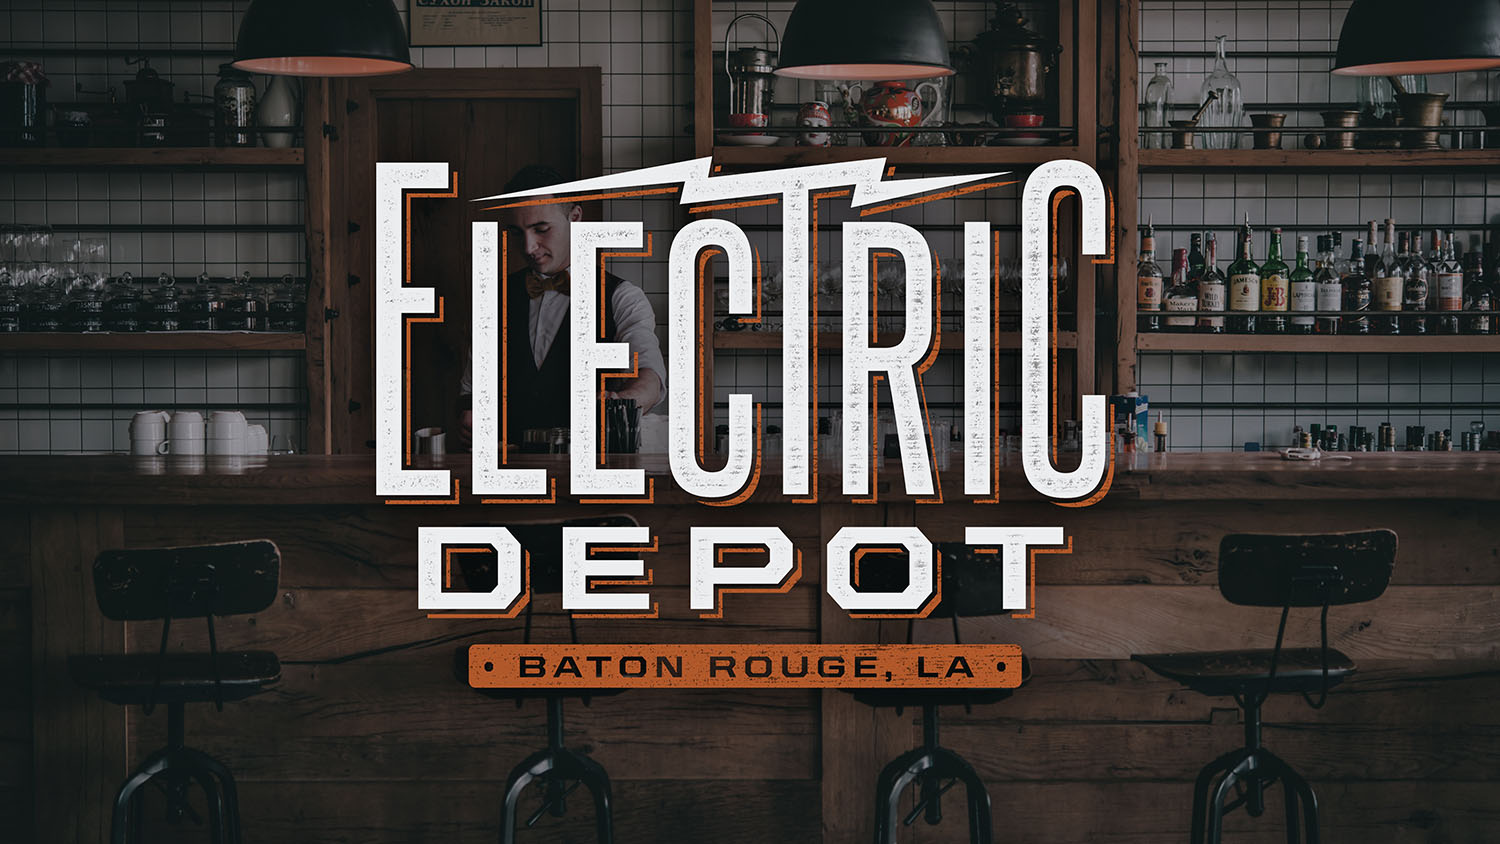 Electric Depot | Brand Image